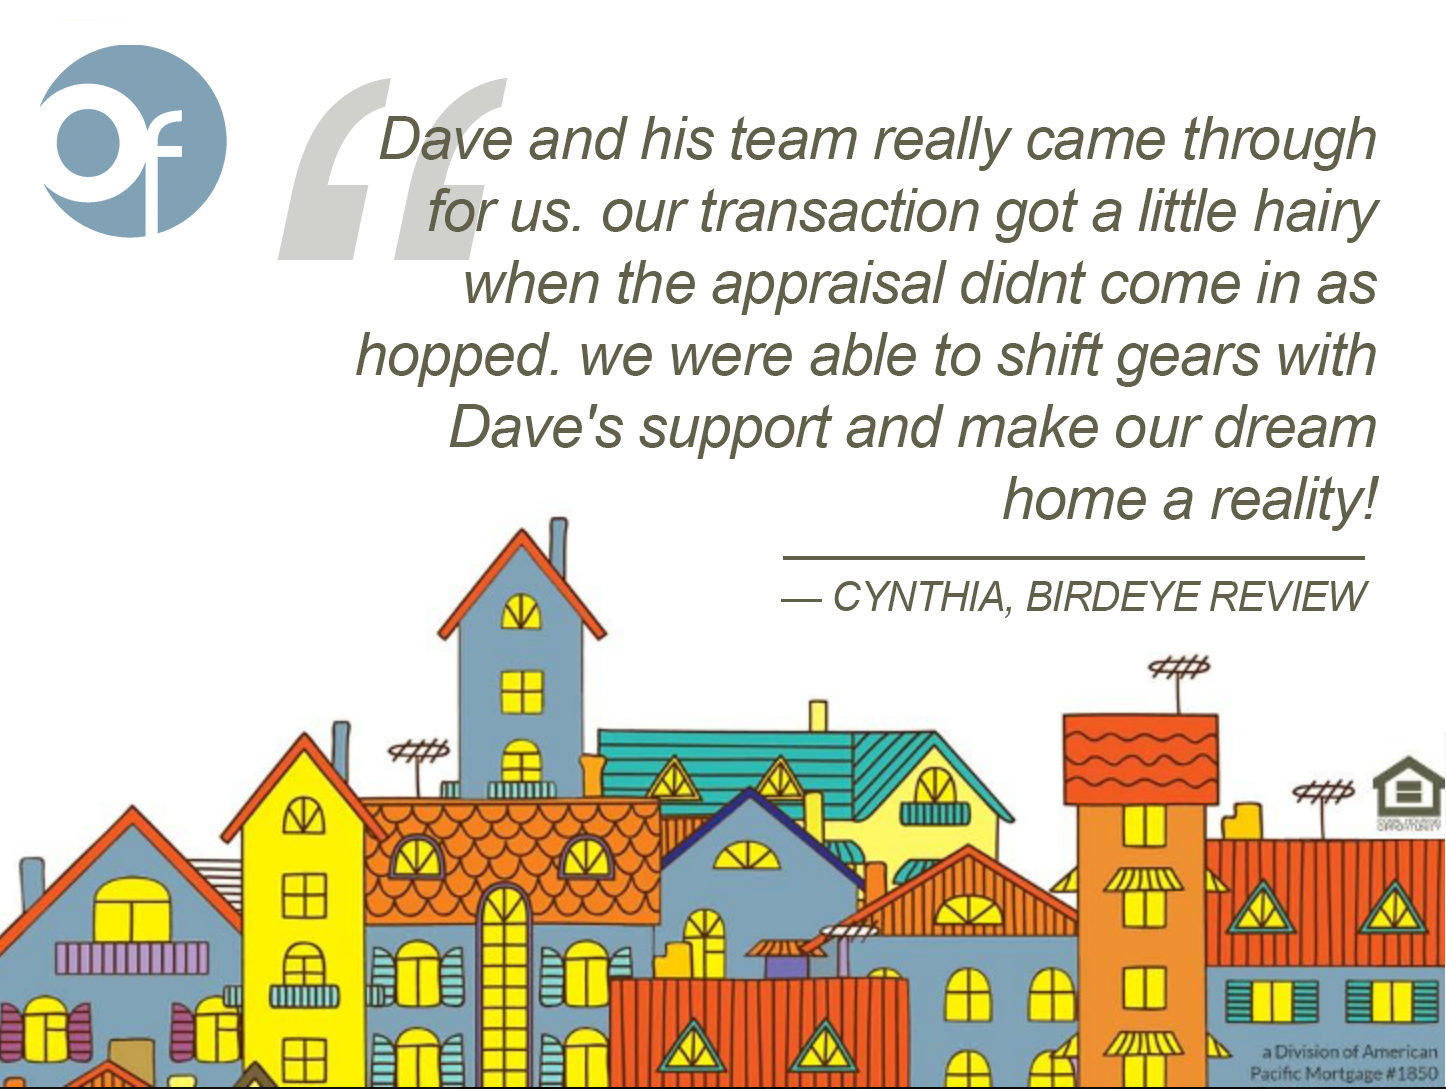 Dave and his team really came through for us. our transaction got a little hairy when the appraisal didnt come in as [hoped]. we were able to shift gears with Dave's support and make our dream home a reality!